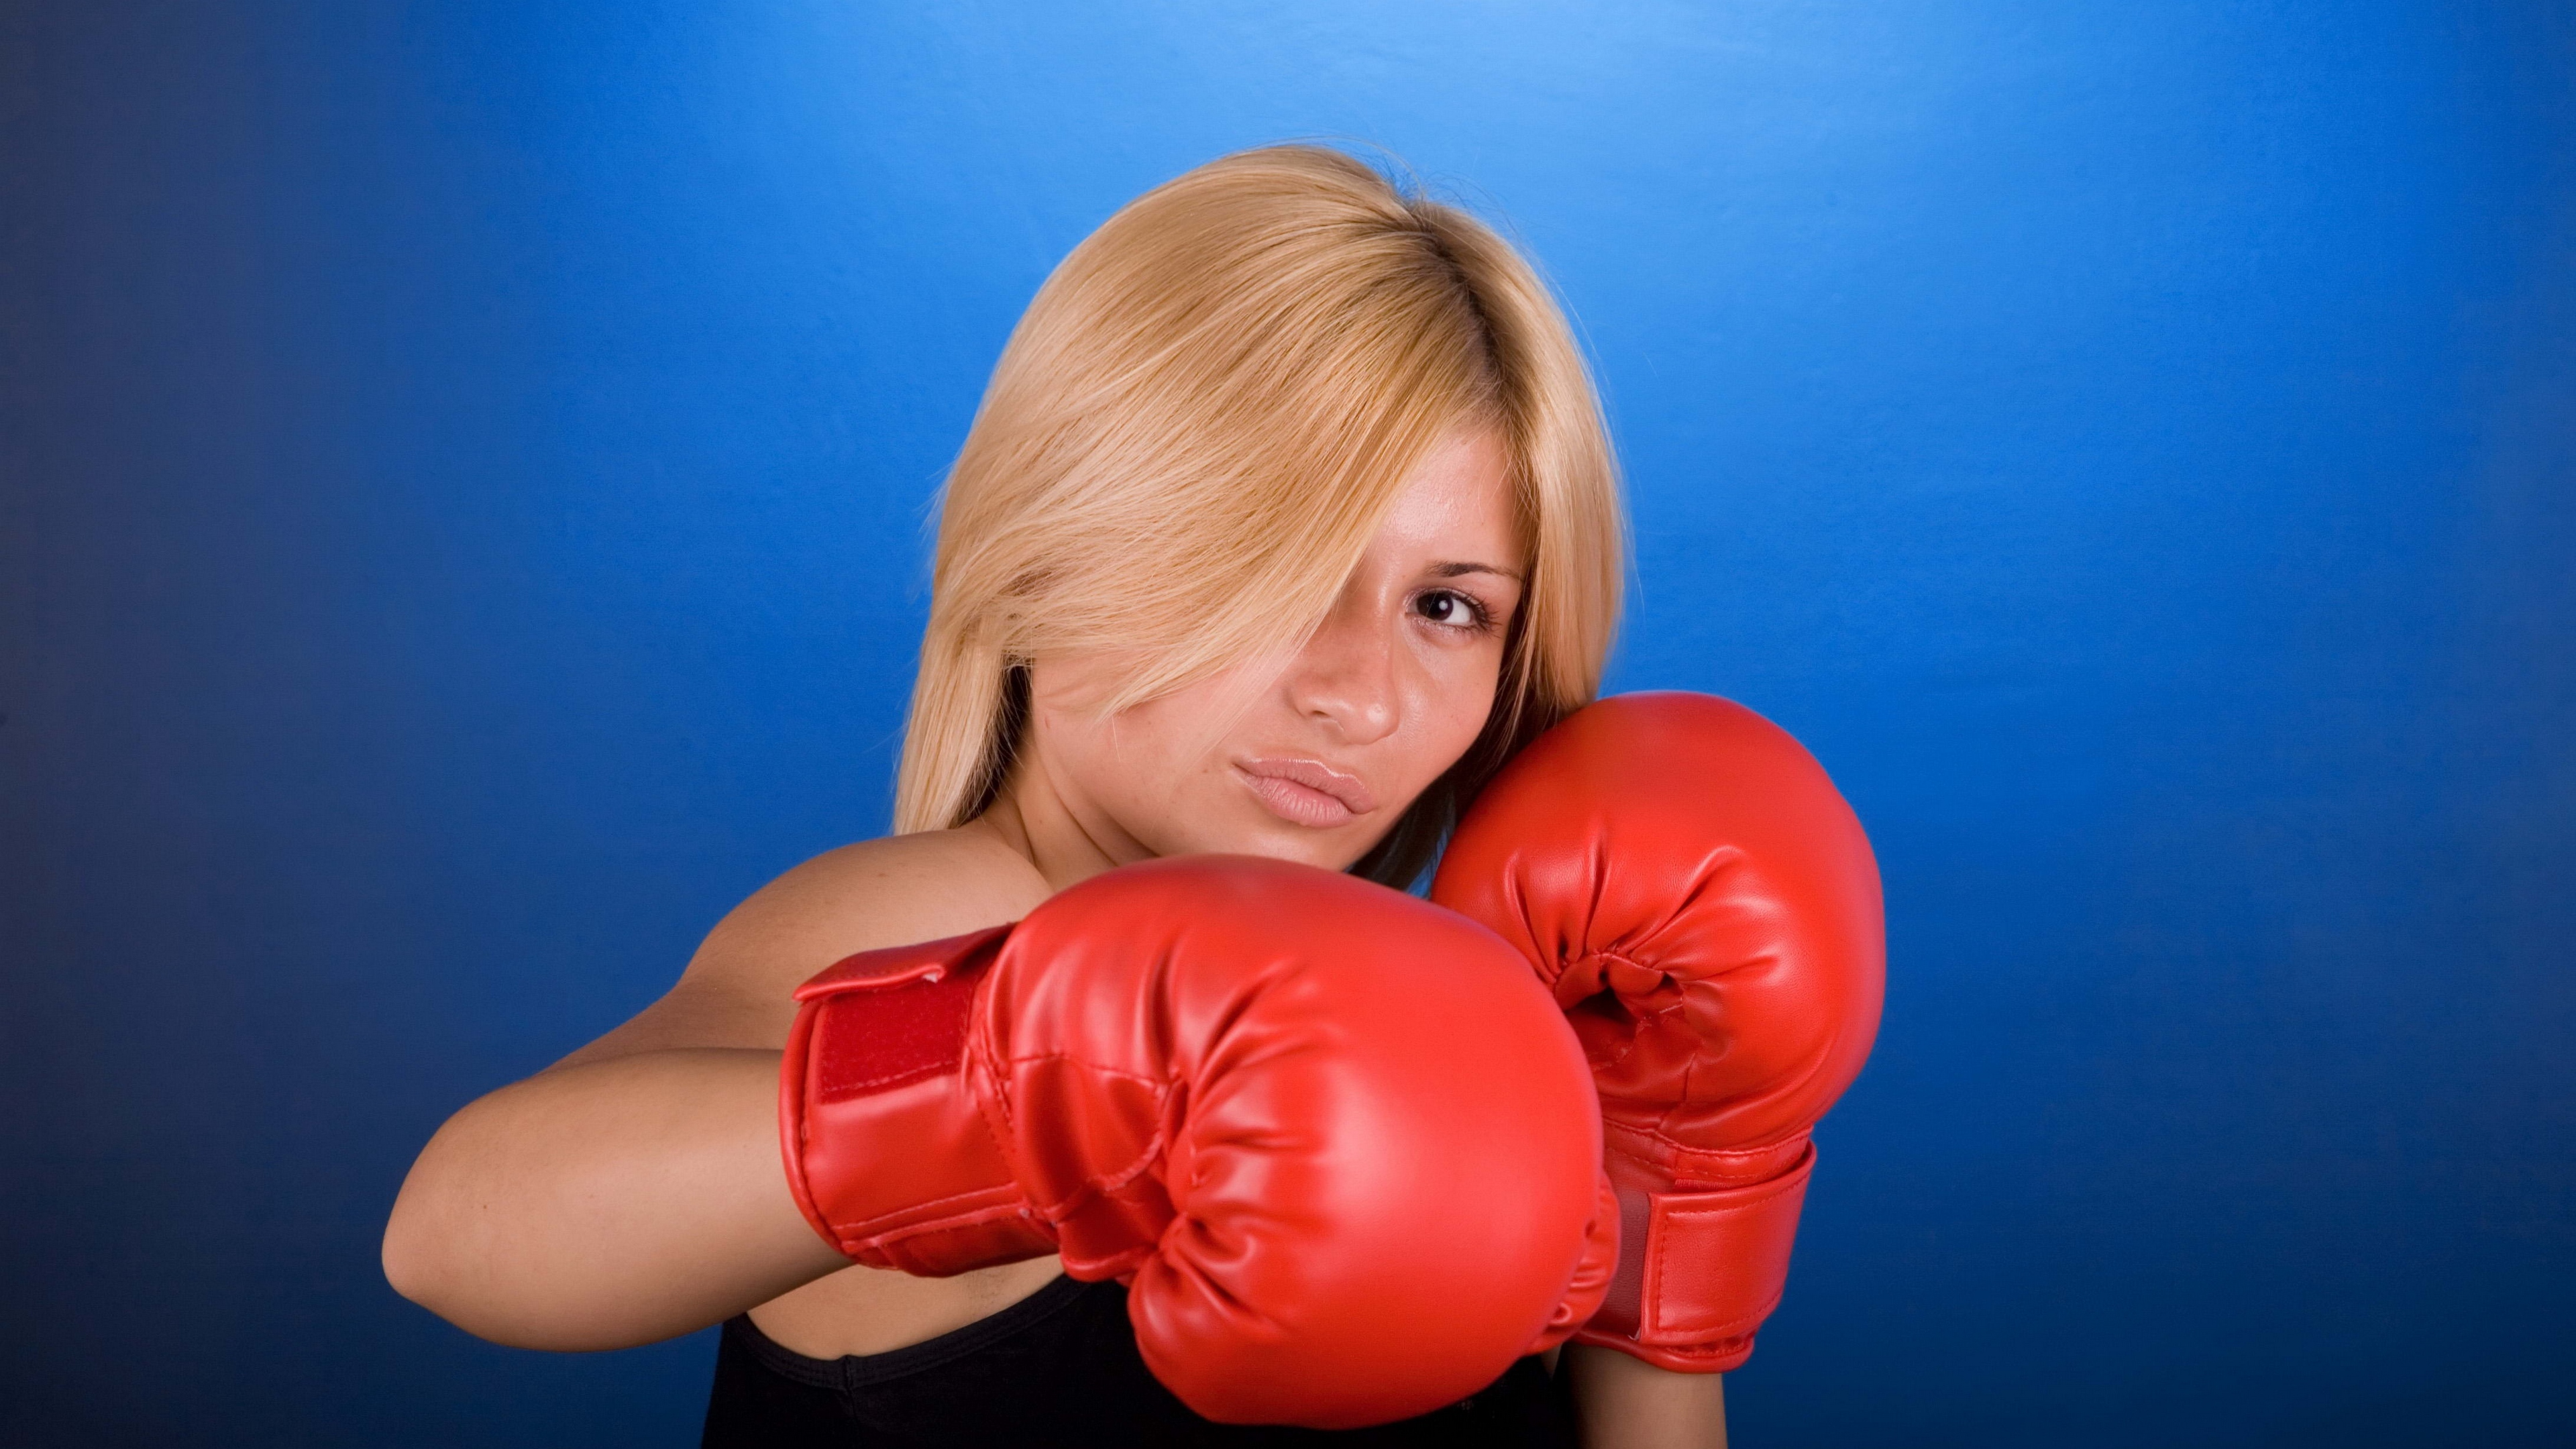 boxing girl blue background 4k 1540062192 - boxing, girl, blue background 4k - Girl, boxing, blue background